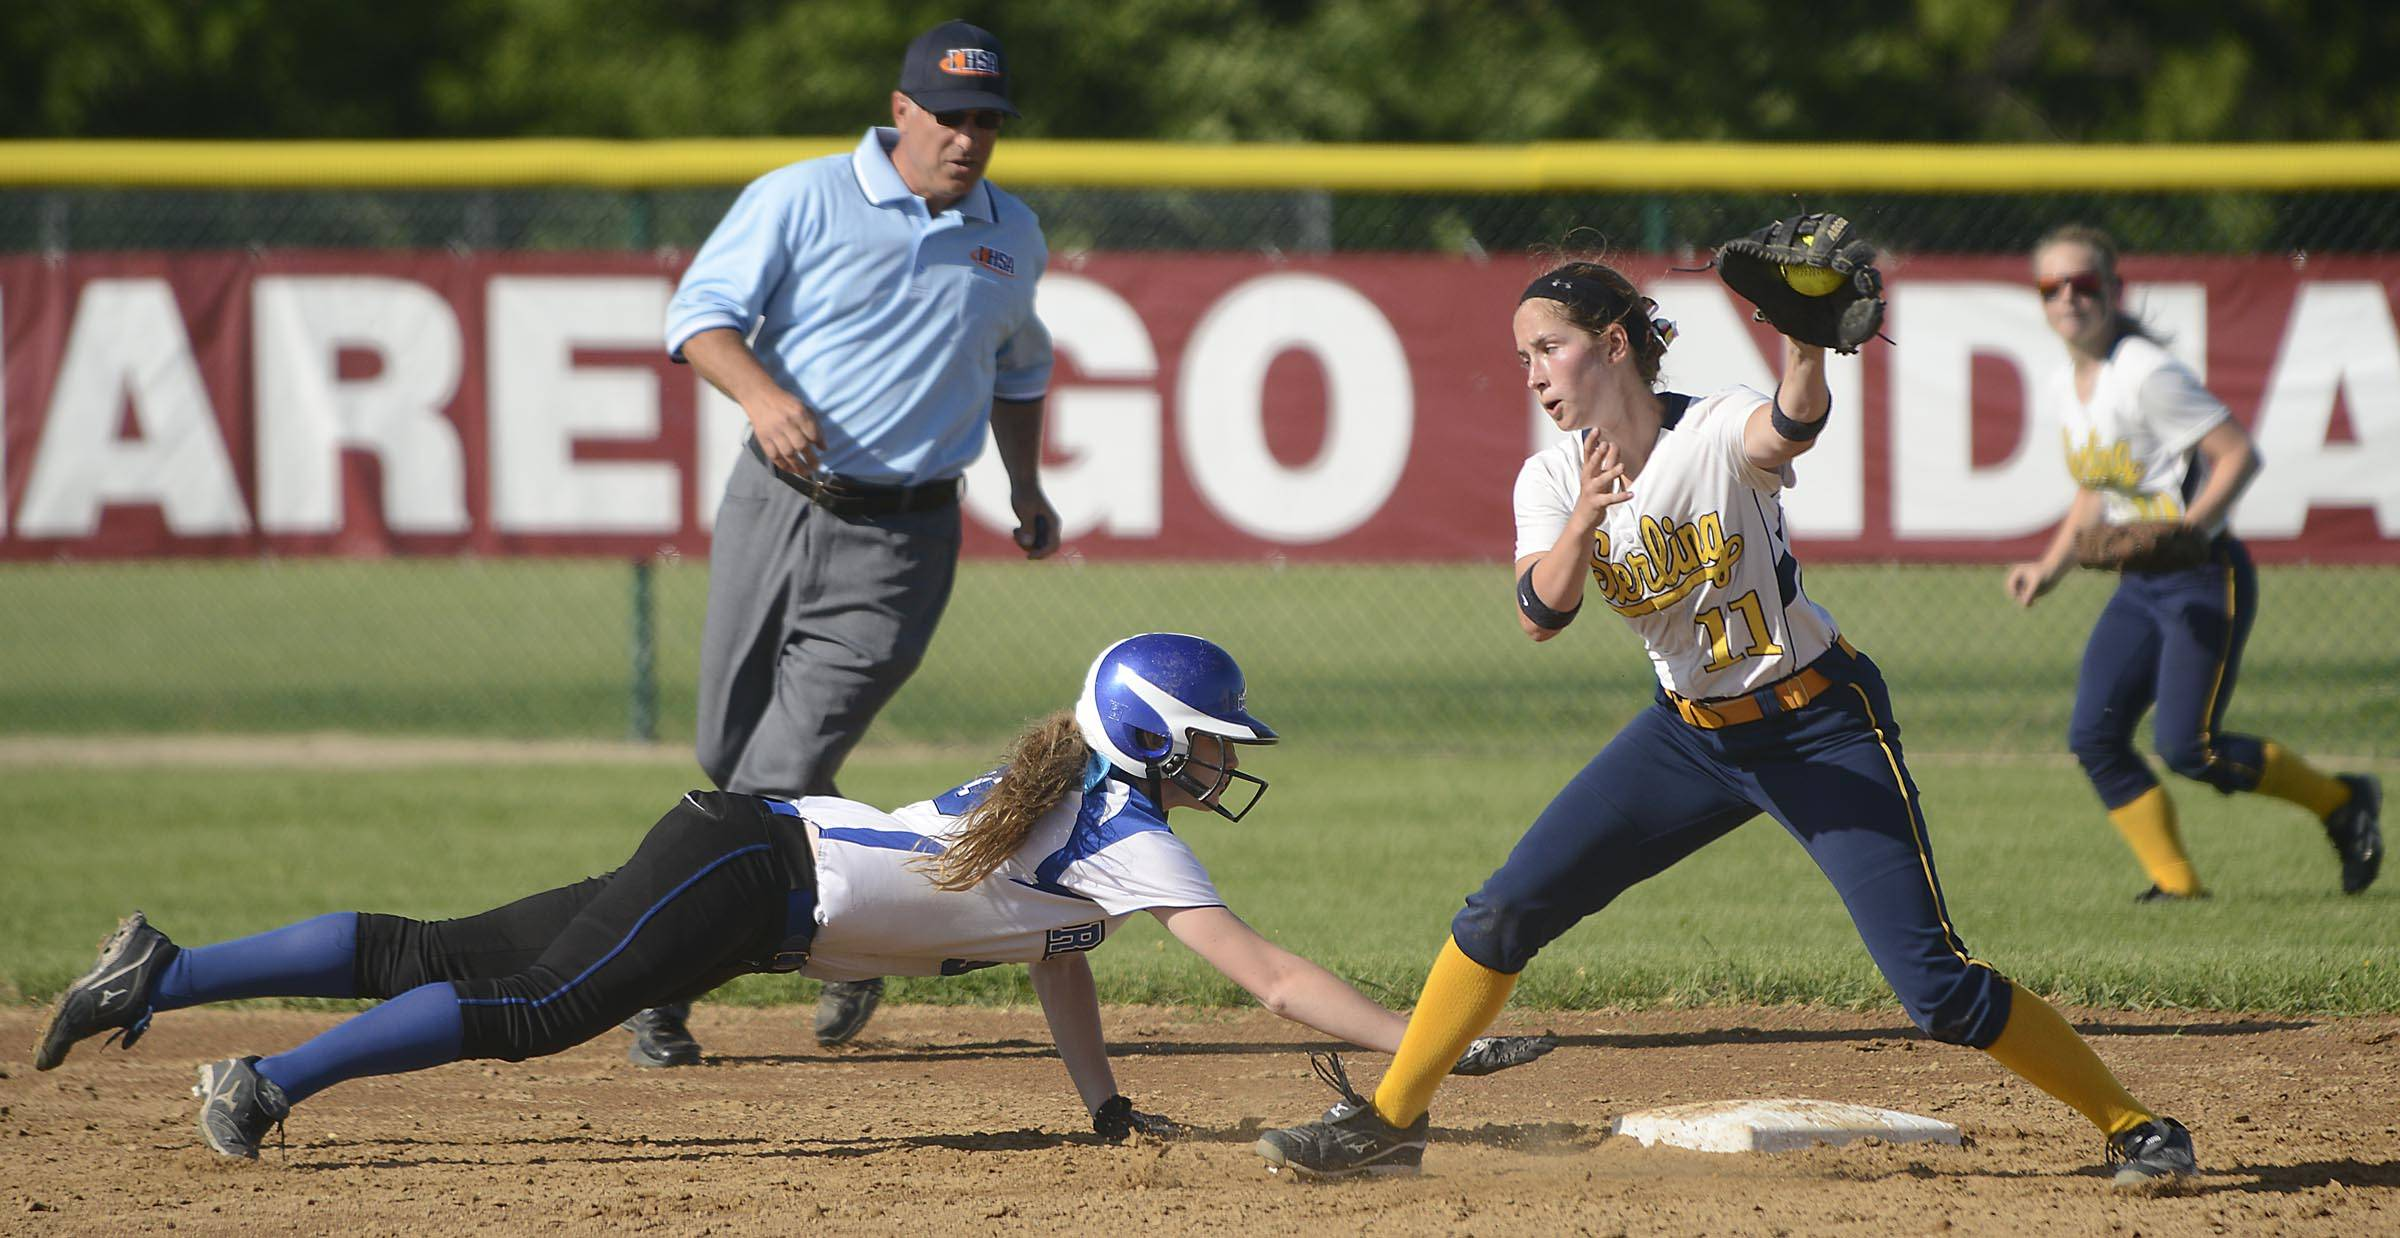 Burlington Central's Rebecca Gerke dives safely back to second base as Sterling's Karlie Mellott grabs the throw Tuesday in the Class 3A Marengo sectional semifinal game.